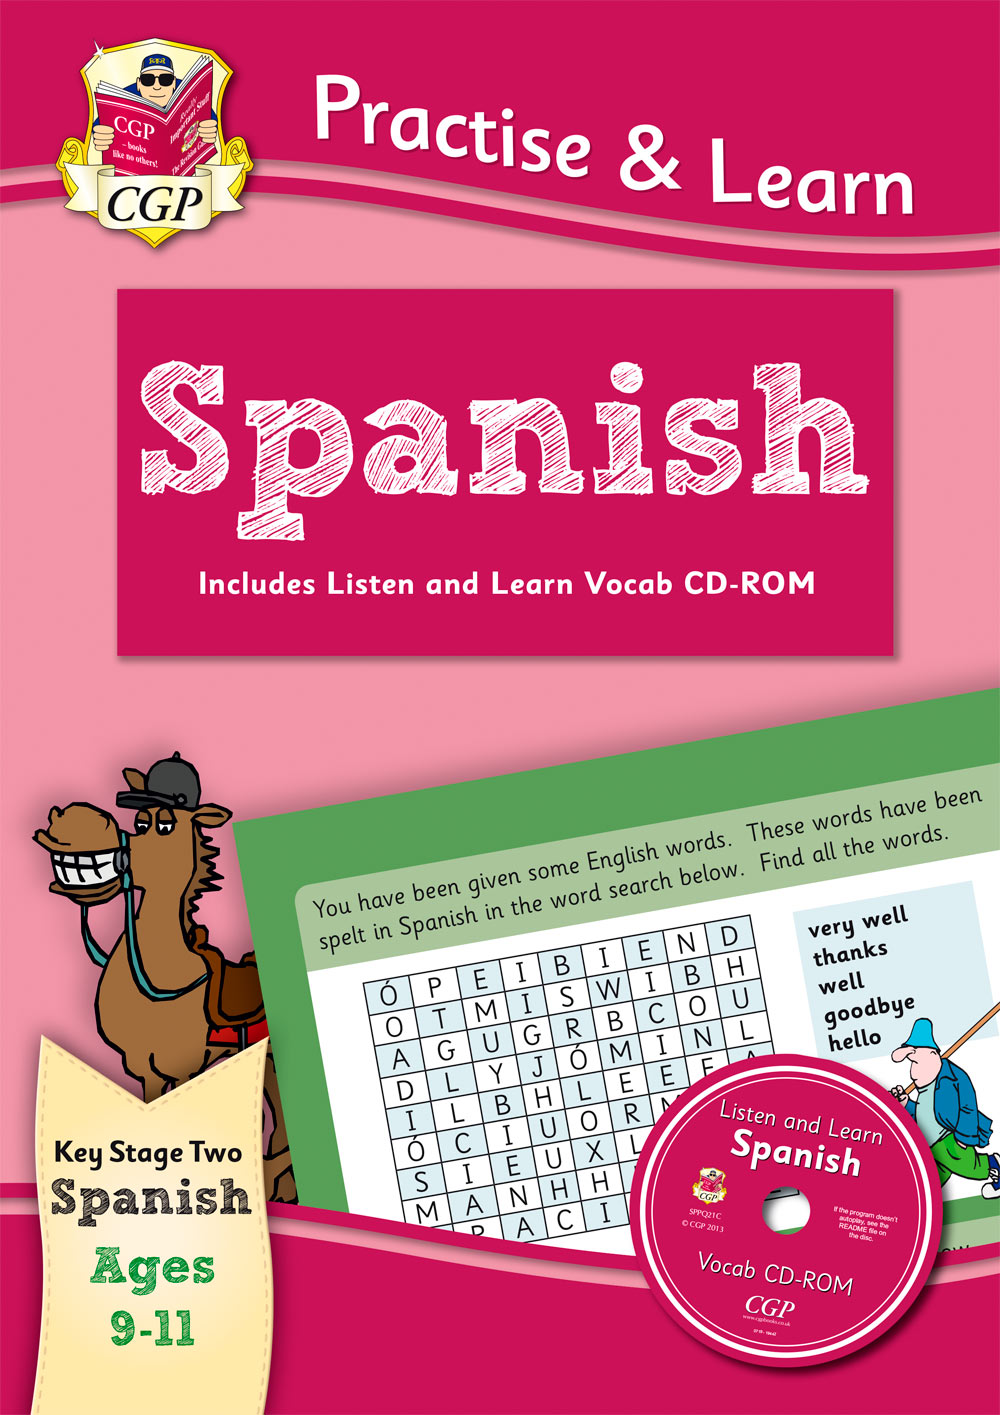 SPP6Q22 - Practise & Learn: Spanish for Ages 9-11 - with vocab CD-ROM